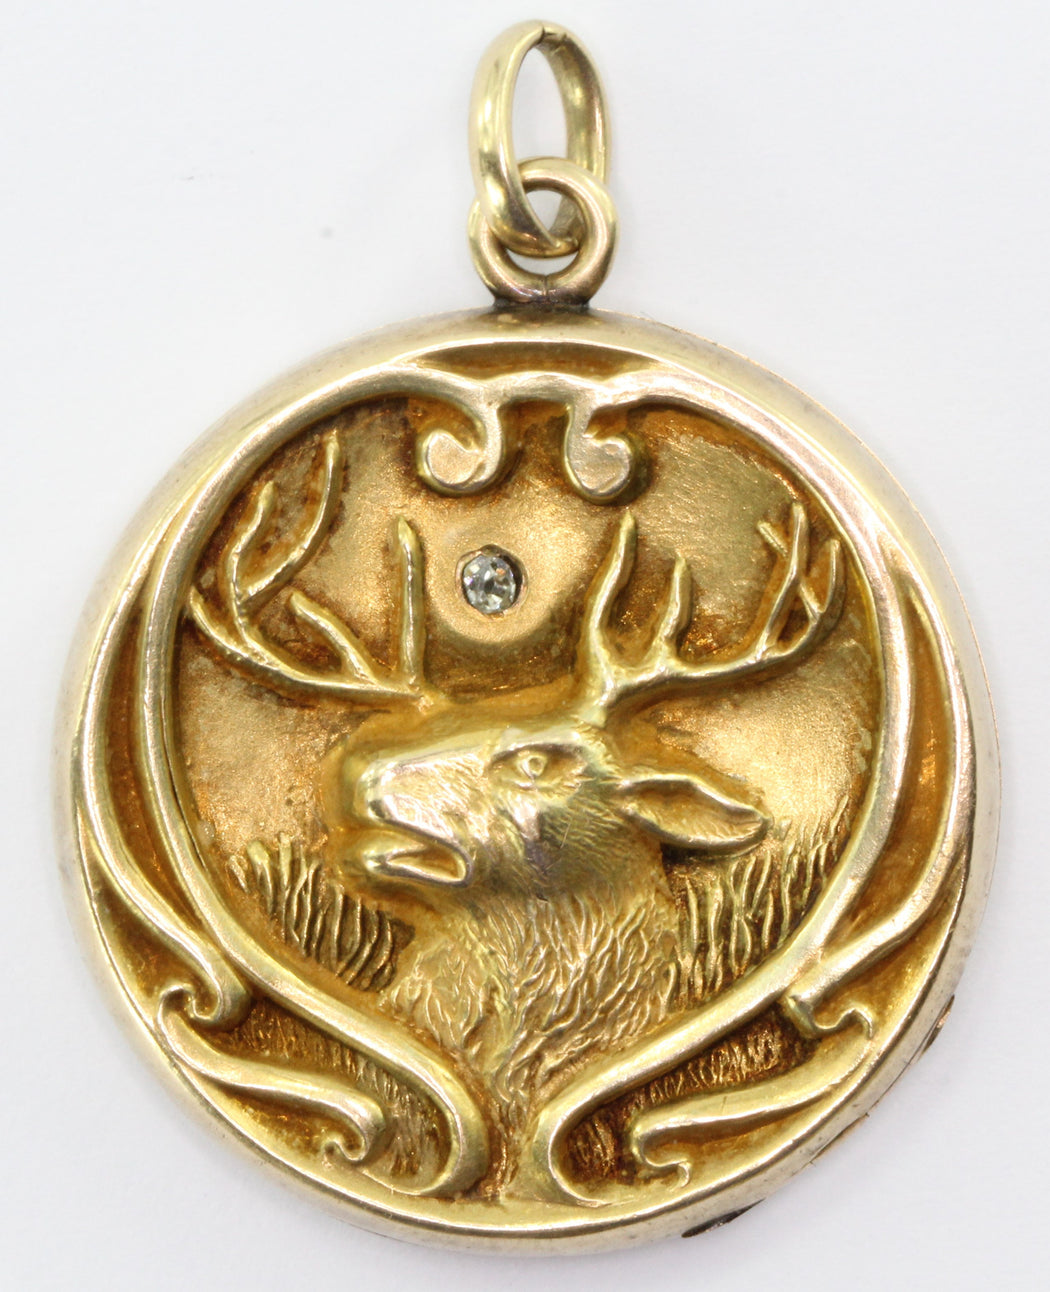 Antique Art Nouveau 10k Gold Repousse Diamond Stag Buck Locket Pendant - Queen May